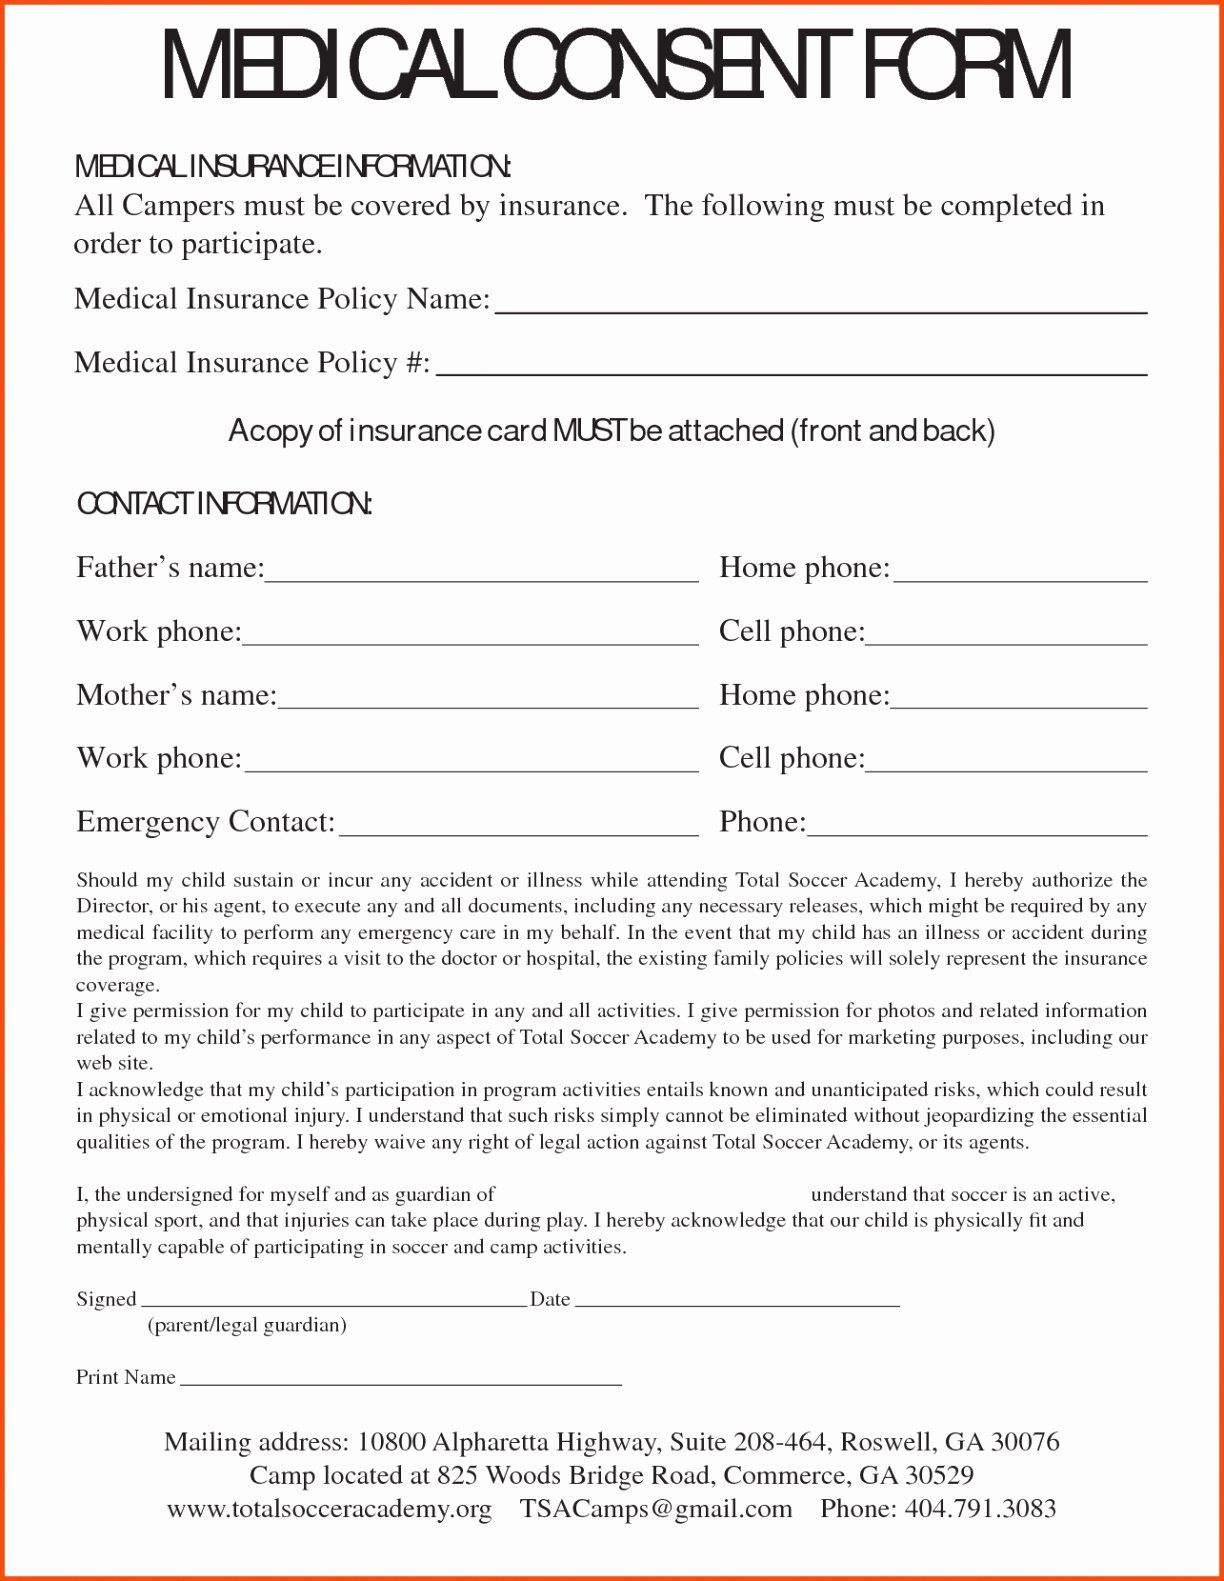 Medical Consent Form Template Free Luxury Medical Consent Letter